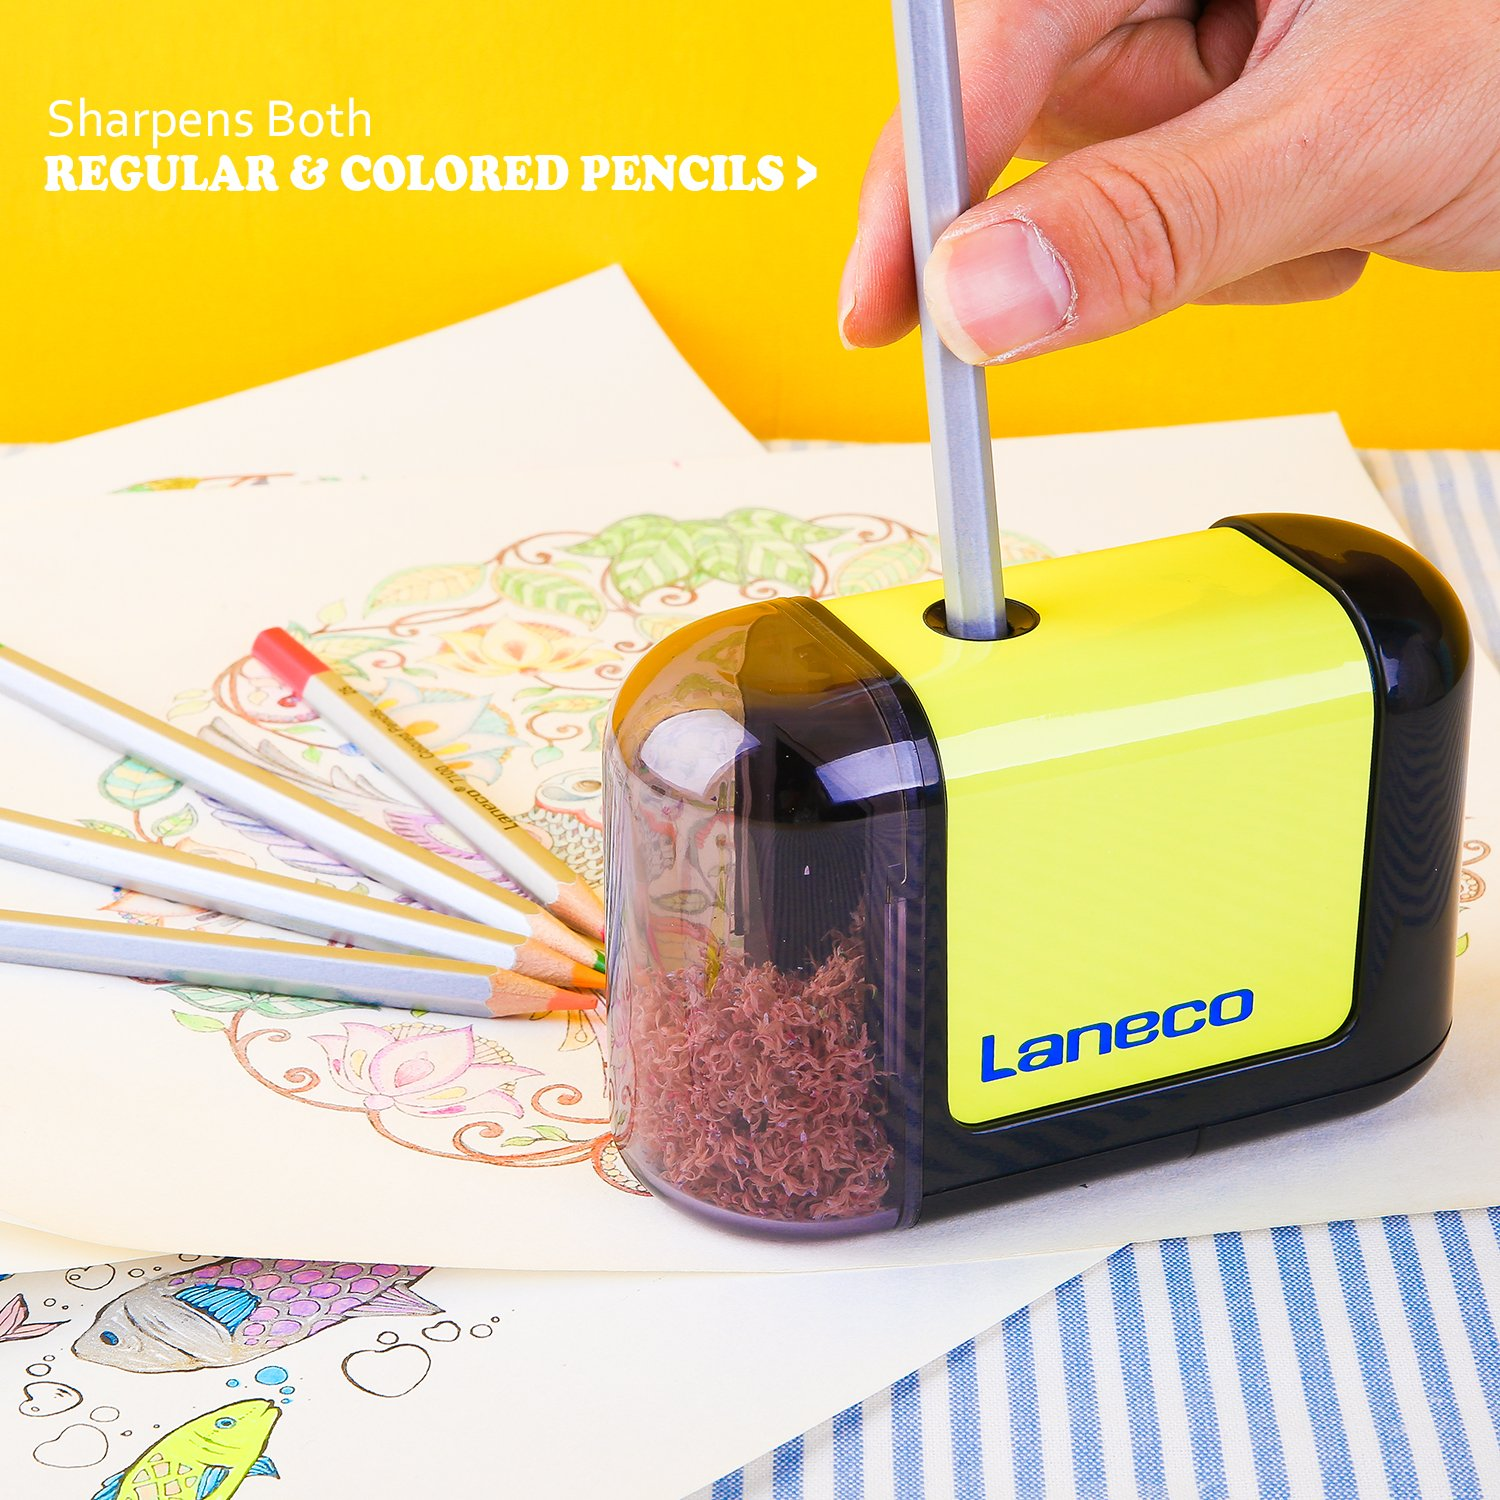 Battery Operated Electric pencil sharpener, Laneco Heavy Duty Helical Blade Pencil Sharpener for Classroom, Office, School, Kids, Teachers, Artists and Adults by Laneco (Image #8)